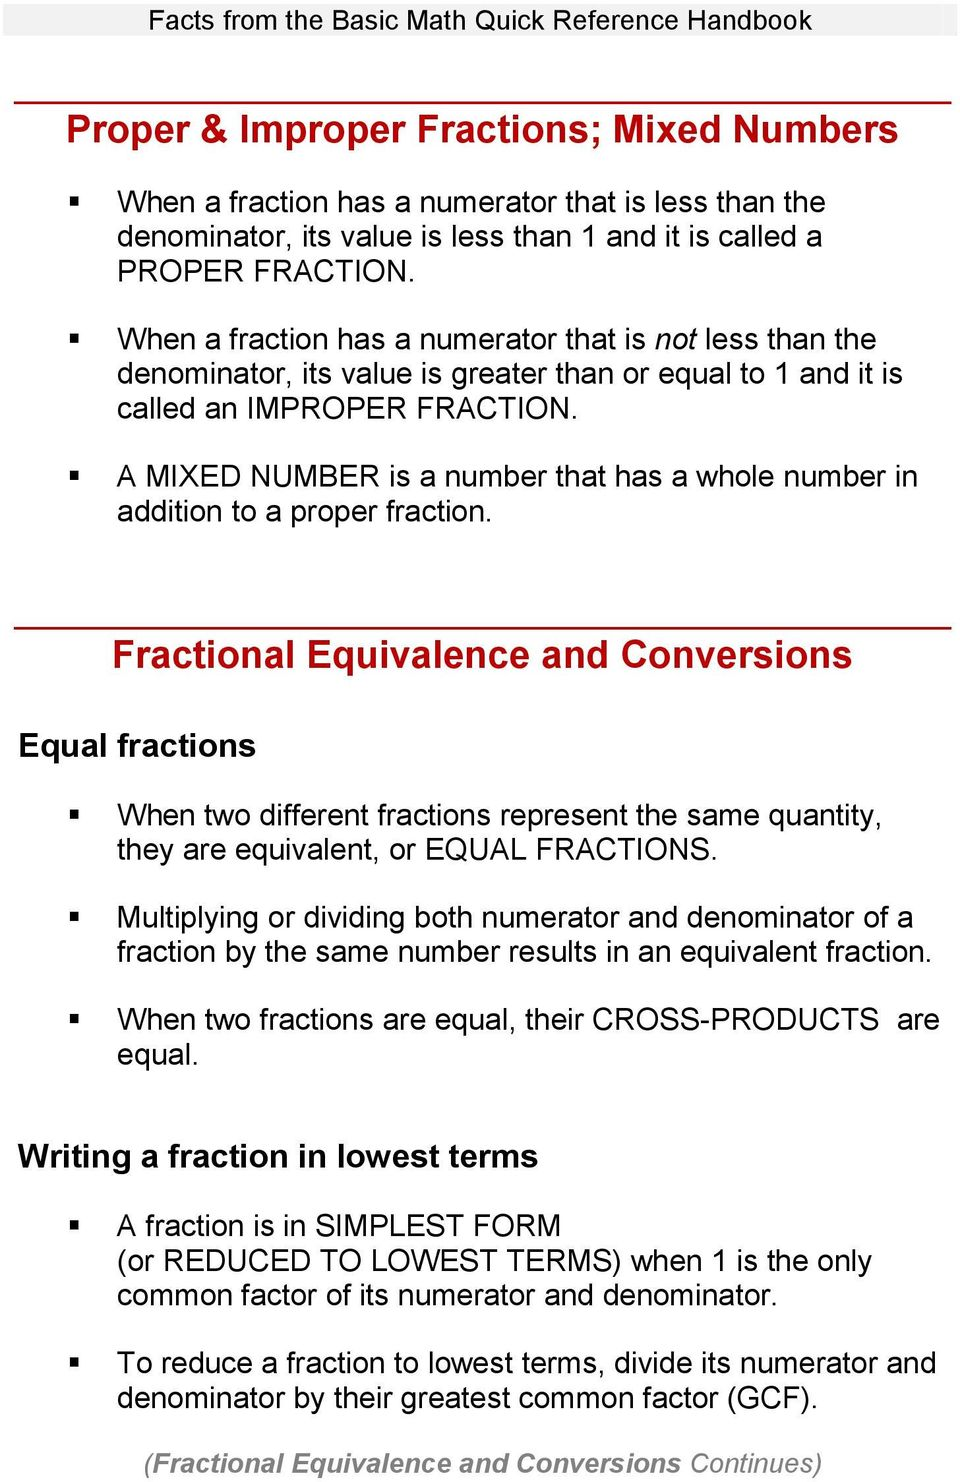 A MIXED NUMBER is a number that has a whole number in addition to a proper fraction.